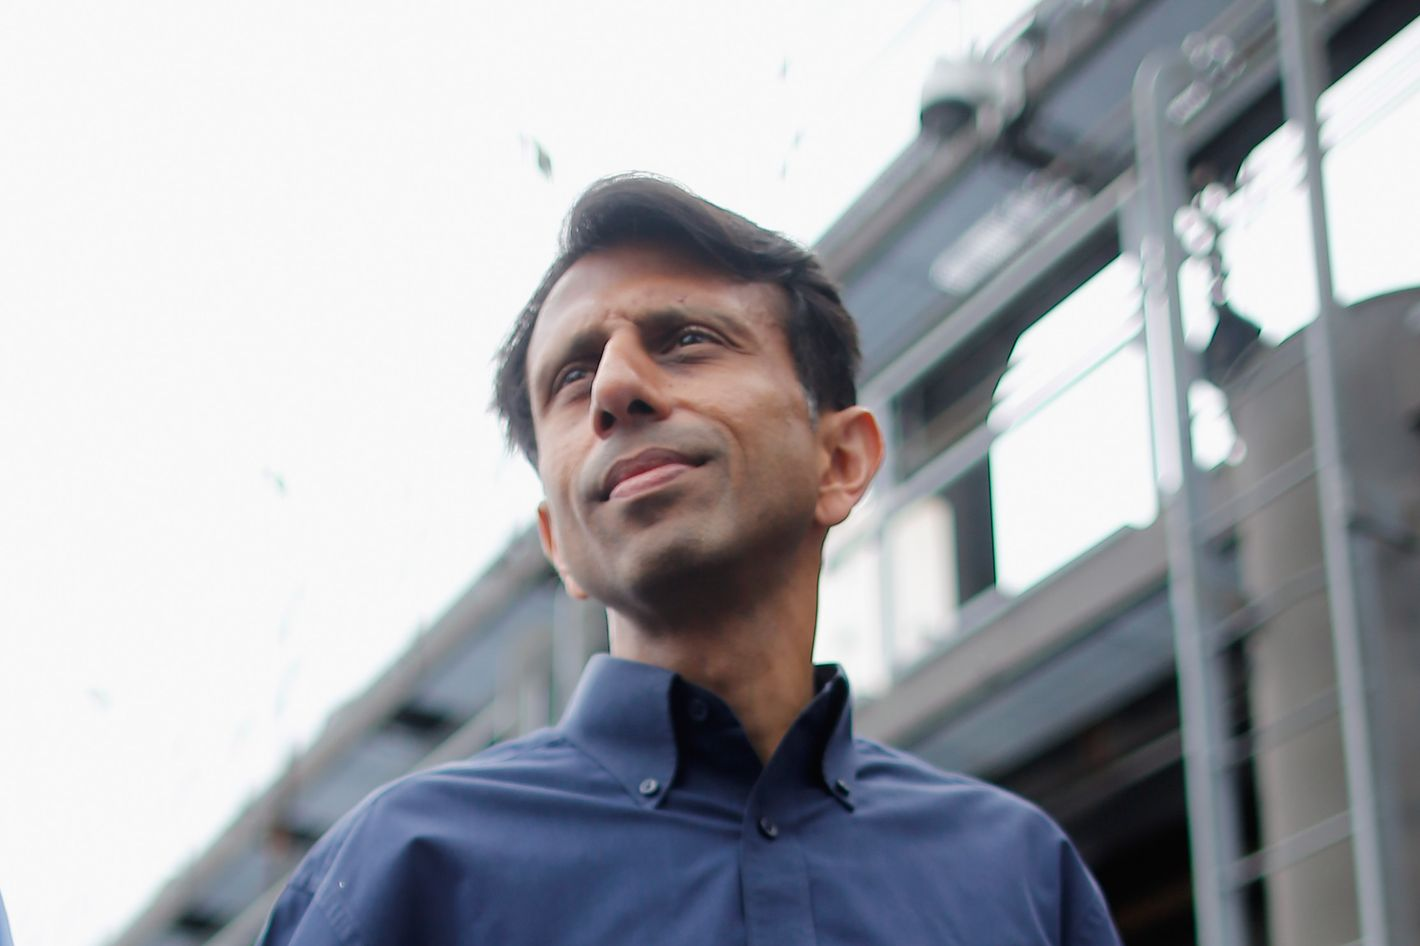 METAIRIE, LA - AUGUST 28:  Louisiana Governor Bobby Jindal receives an update on the status of the pumping station at the 17th Street Canal during Hurricane Isaac on August 28, 2012 in Metairie, Louisiana. Hurricane Isaac is expected to make landfall along the Louisiana coast later today.  (Photo by Chris Graythen/Getty Images)